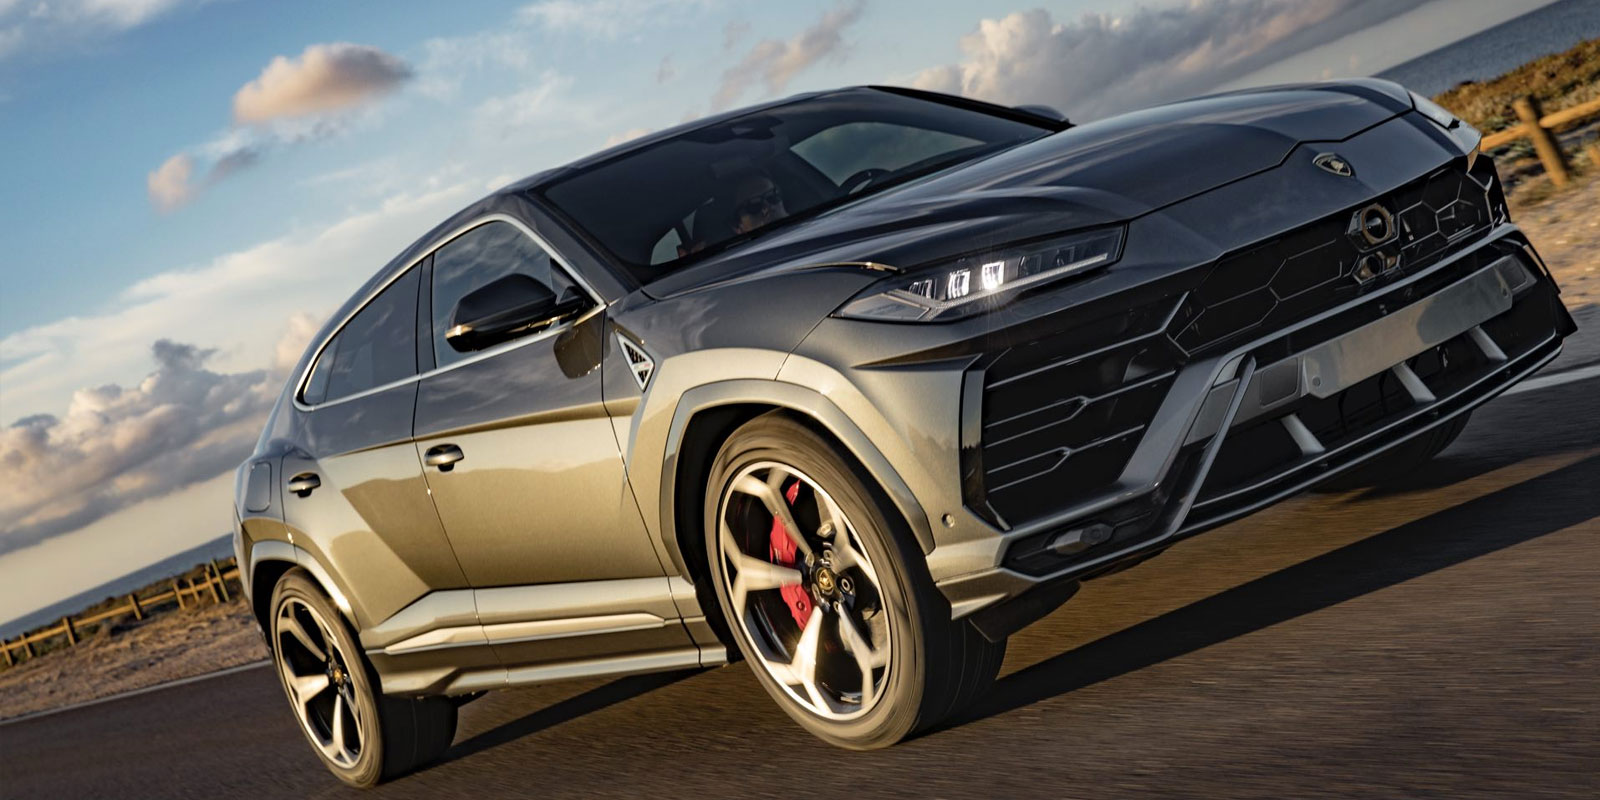 Lamborghini Urus - The World's First Super Sport Utility Vehicle image 11